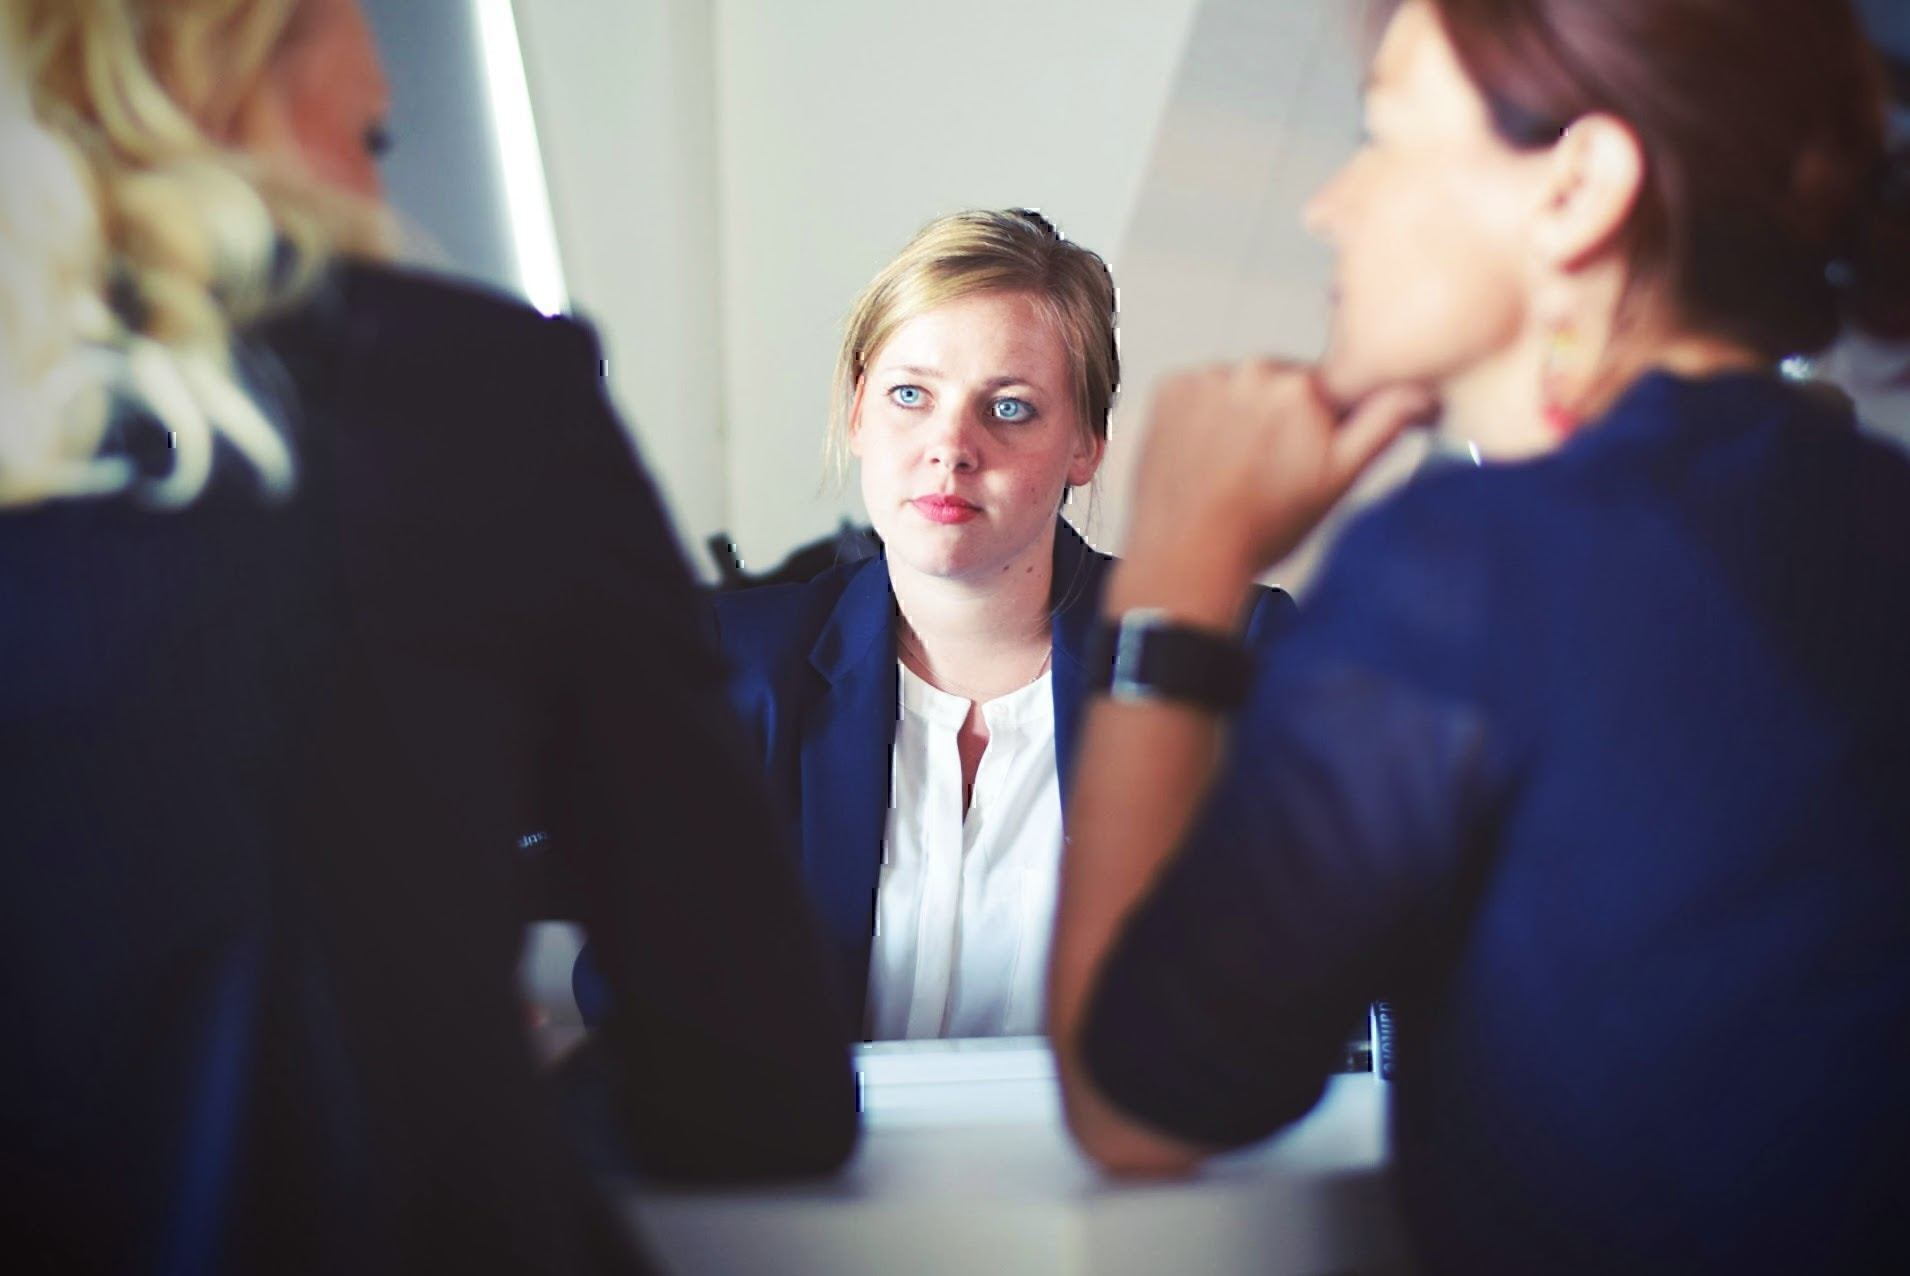 A female job candidate sits during a job interview